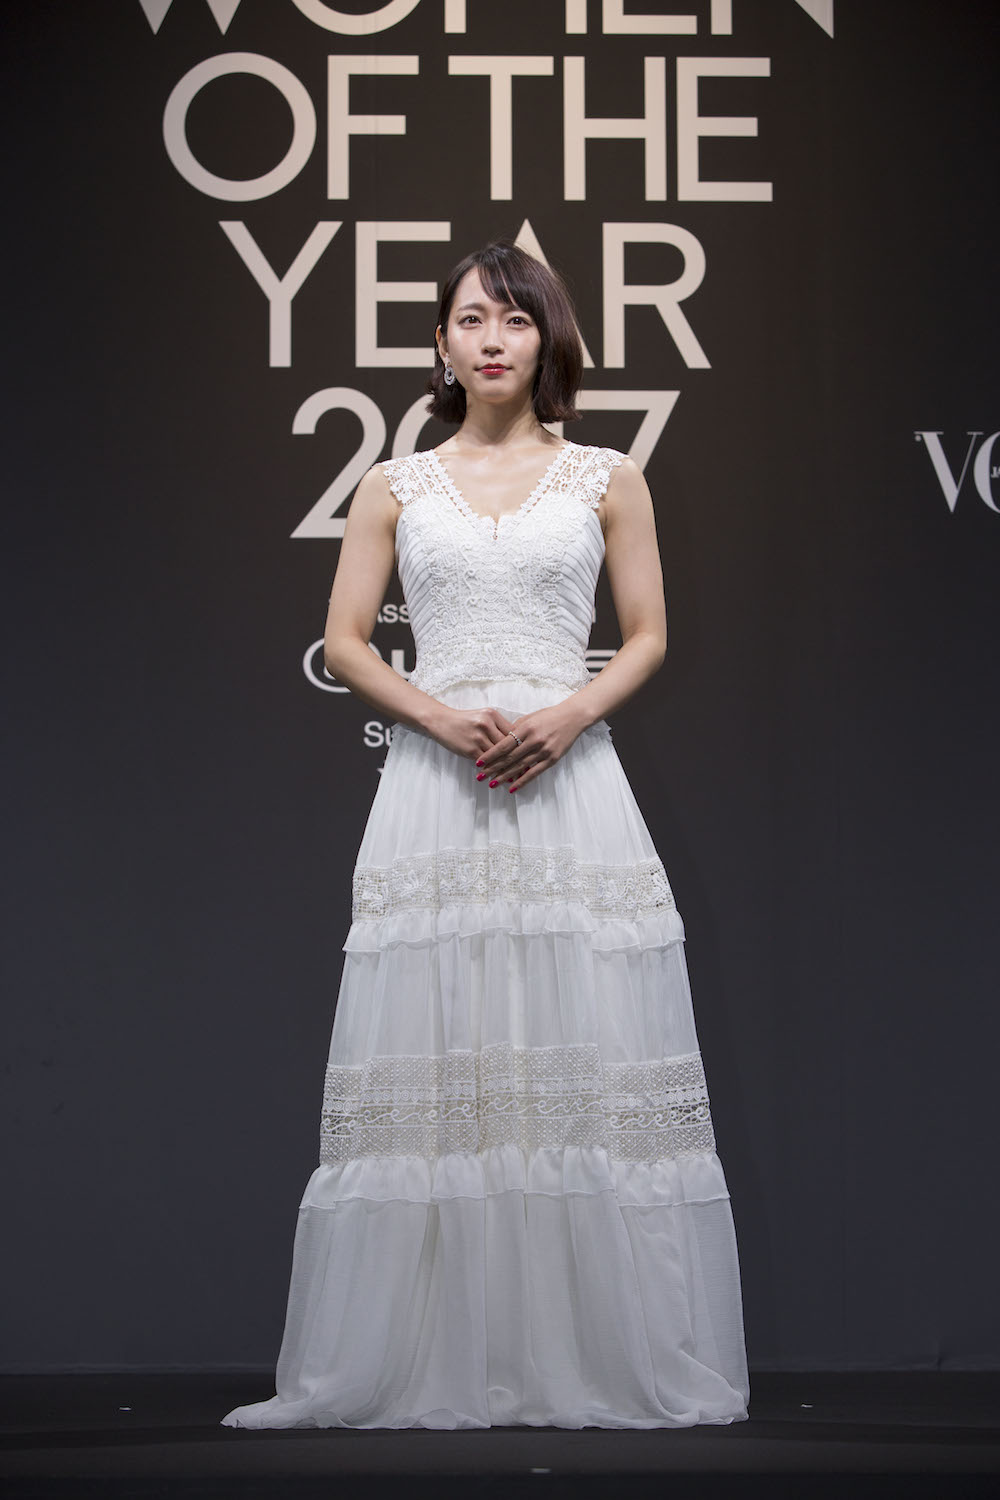 吉岡里帆、「VOGUE JAPAN WOMEN OF THE YEAR」受賞